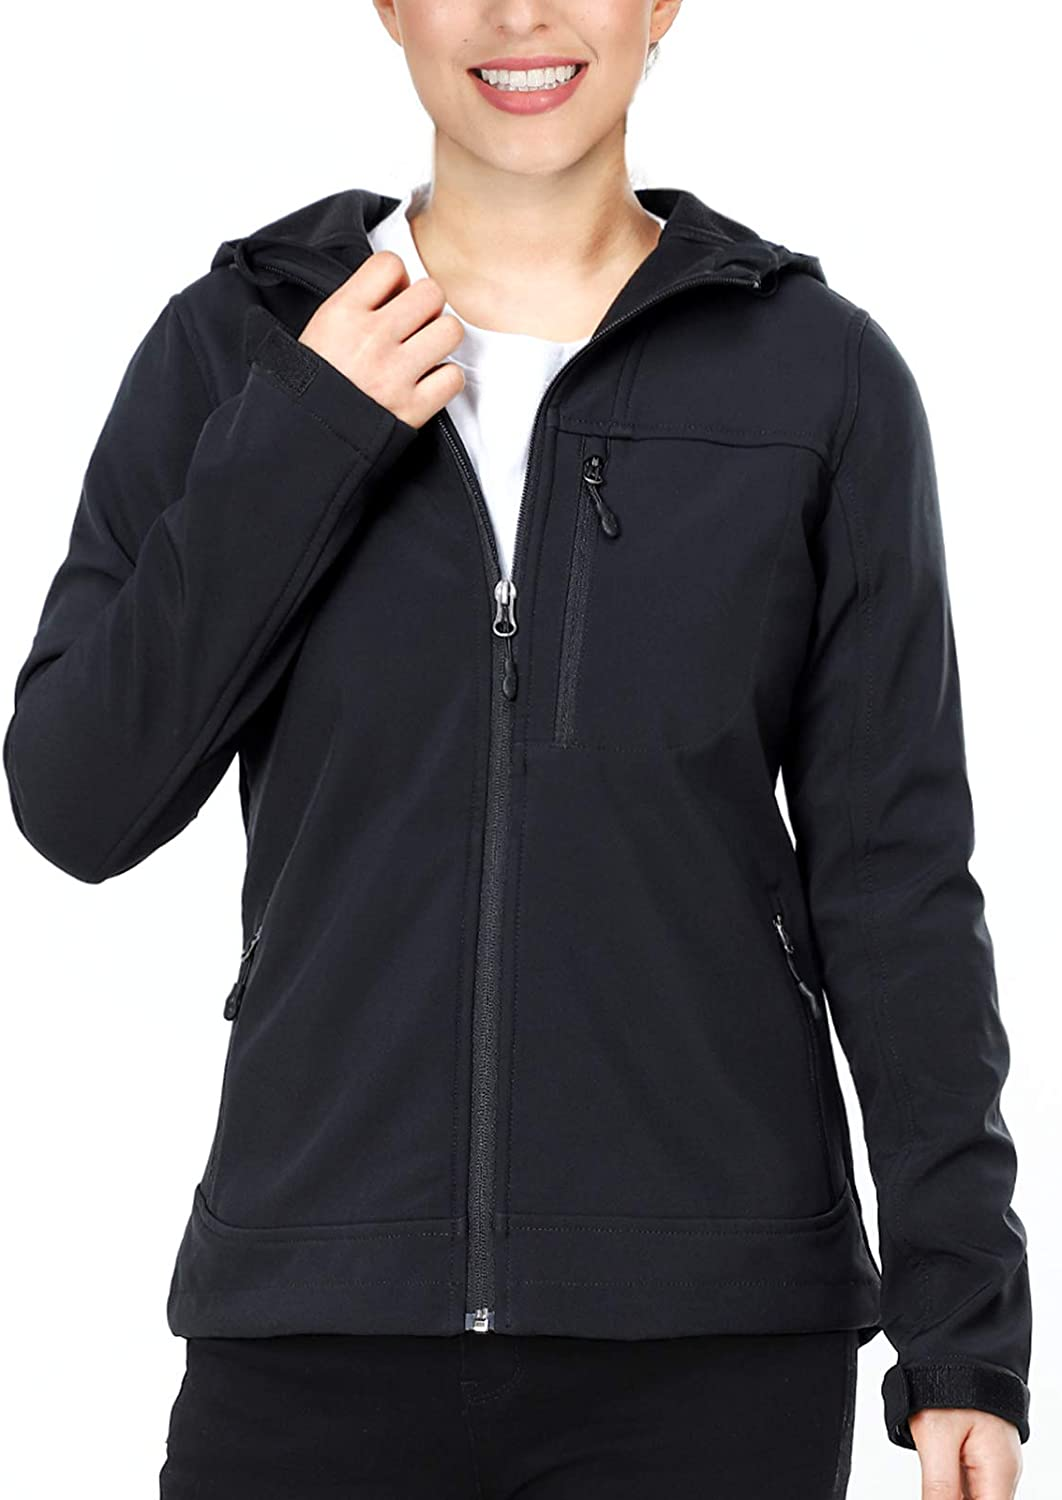 MIER Women's Hooded Softshell Jacket Tactical Jacket with Fleece Lined for Hiking Travel Work Casual, Water Resistant, Black: Clothing